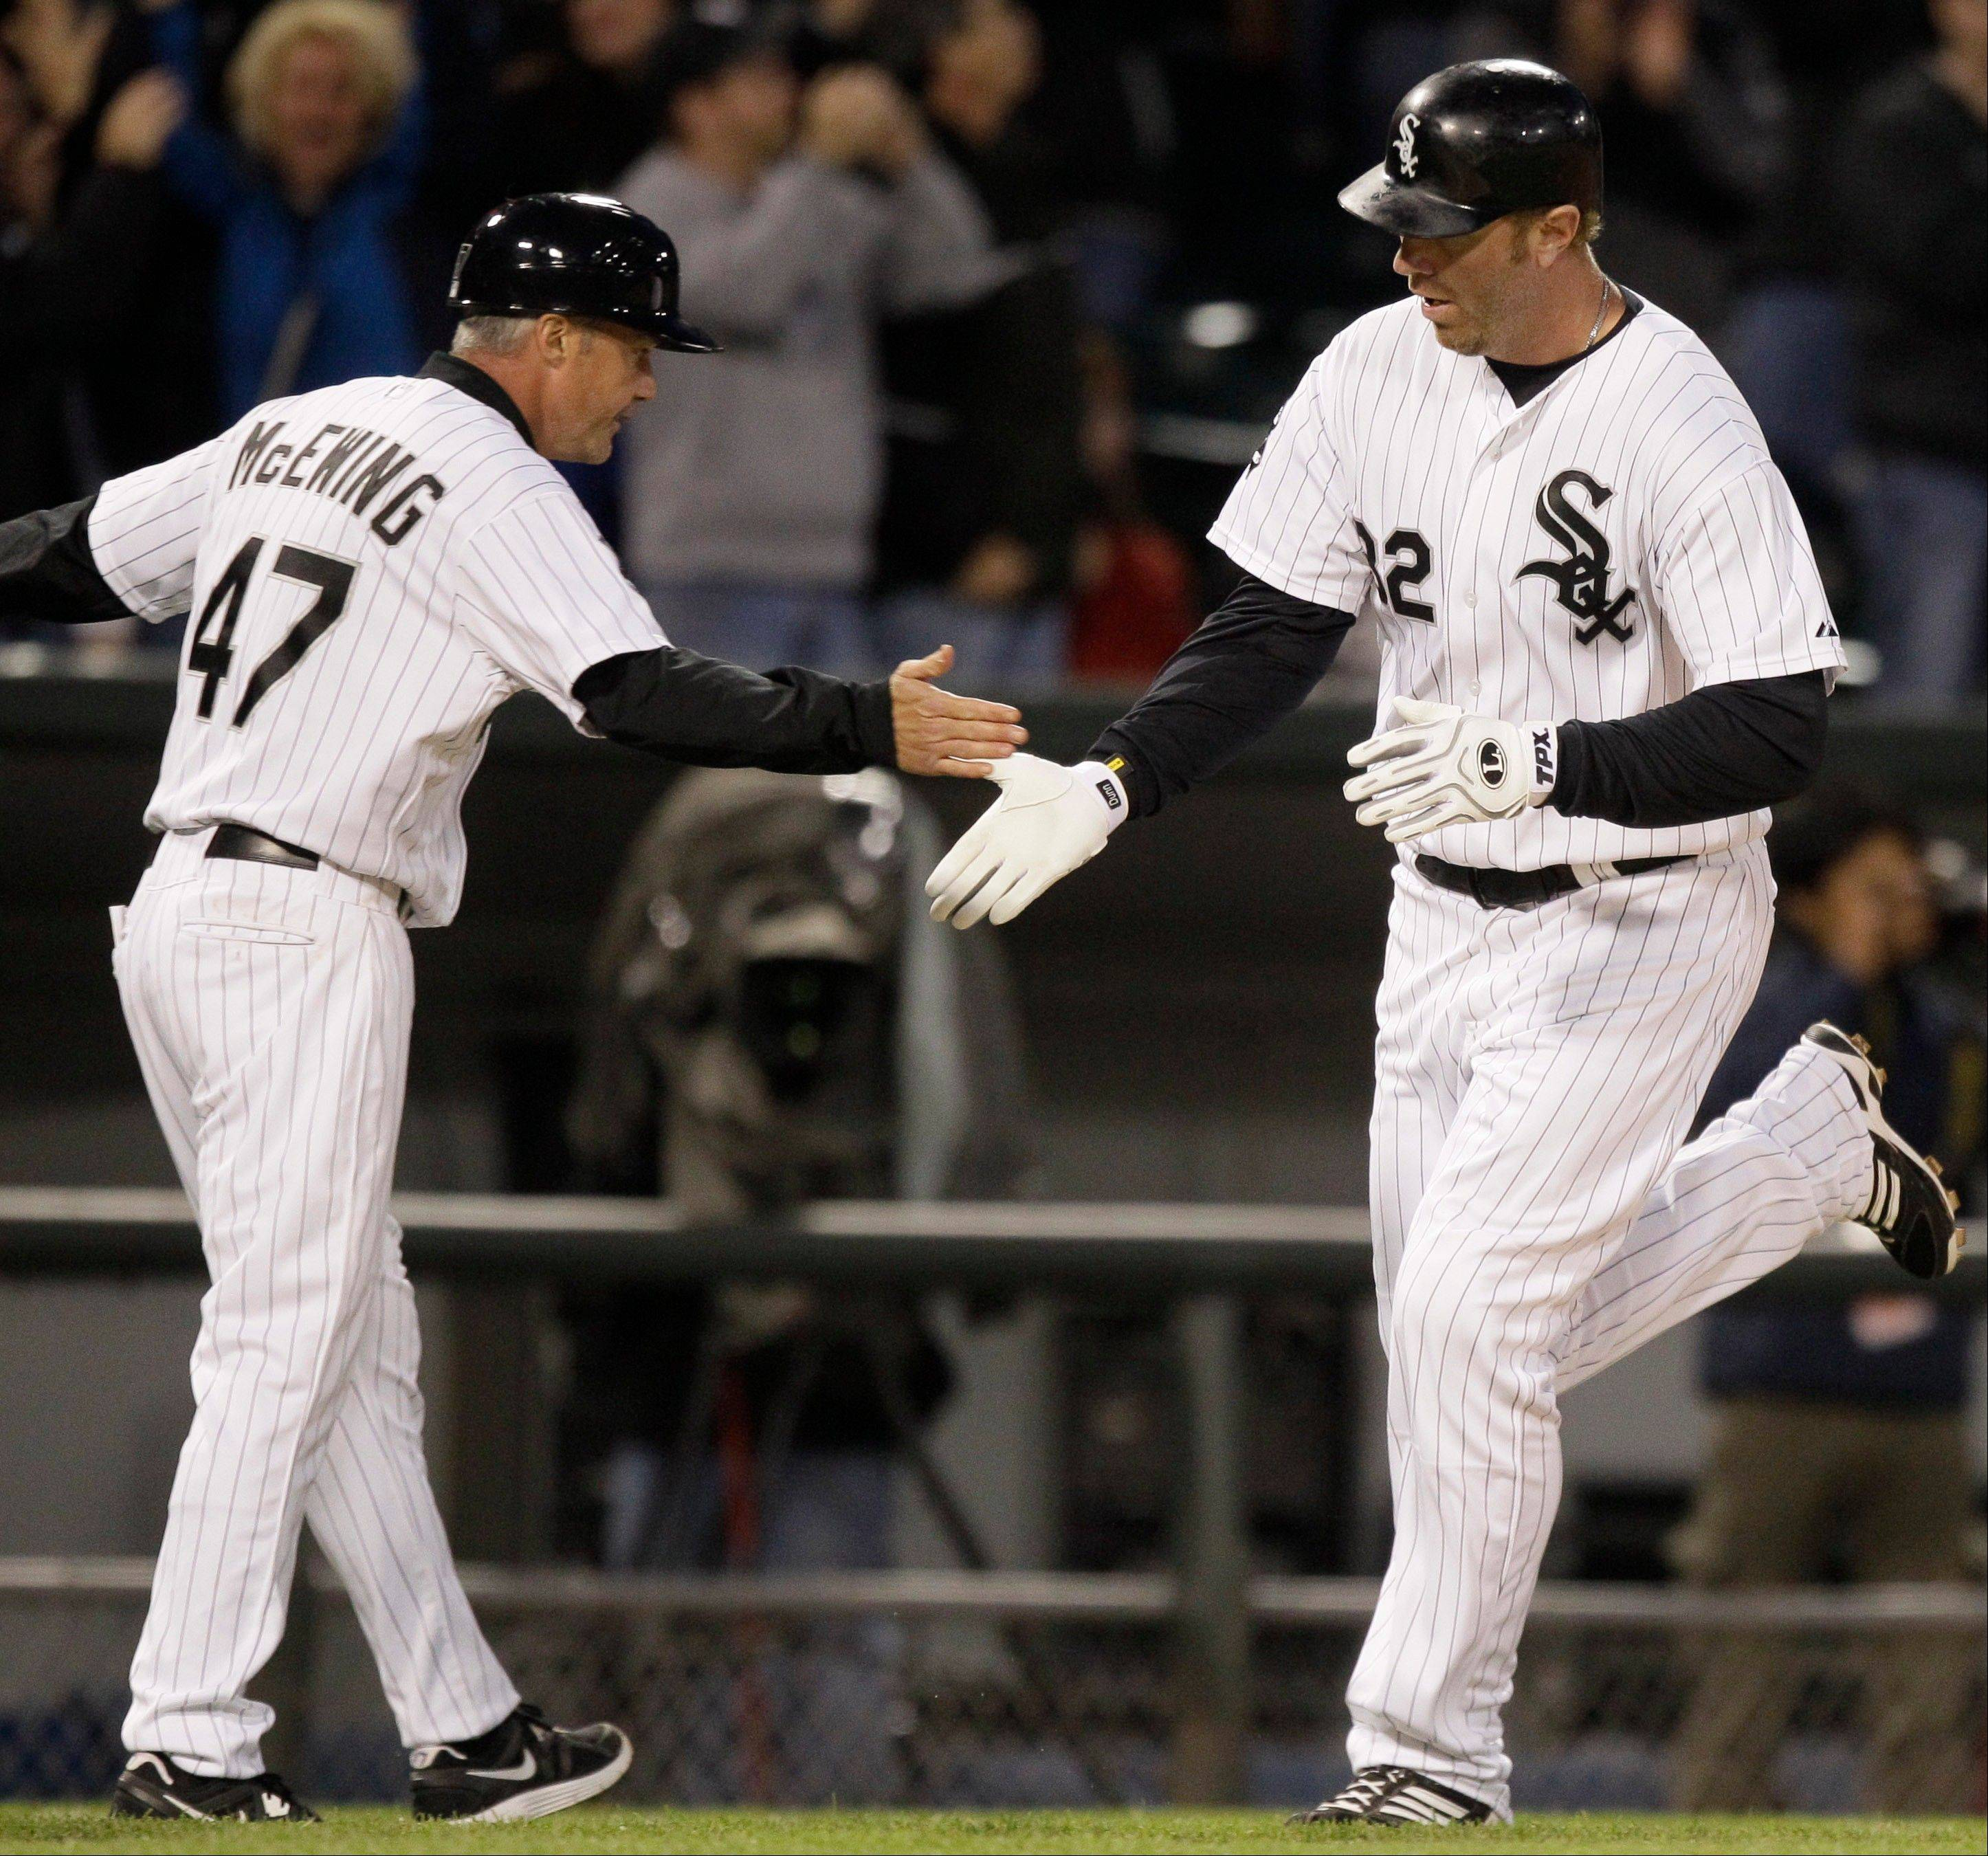 Sox win 9th straight thanks to misplay in CF